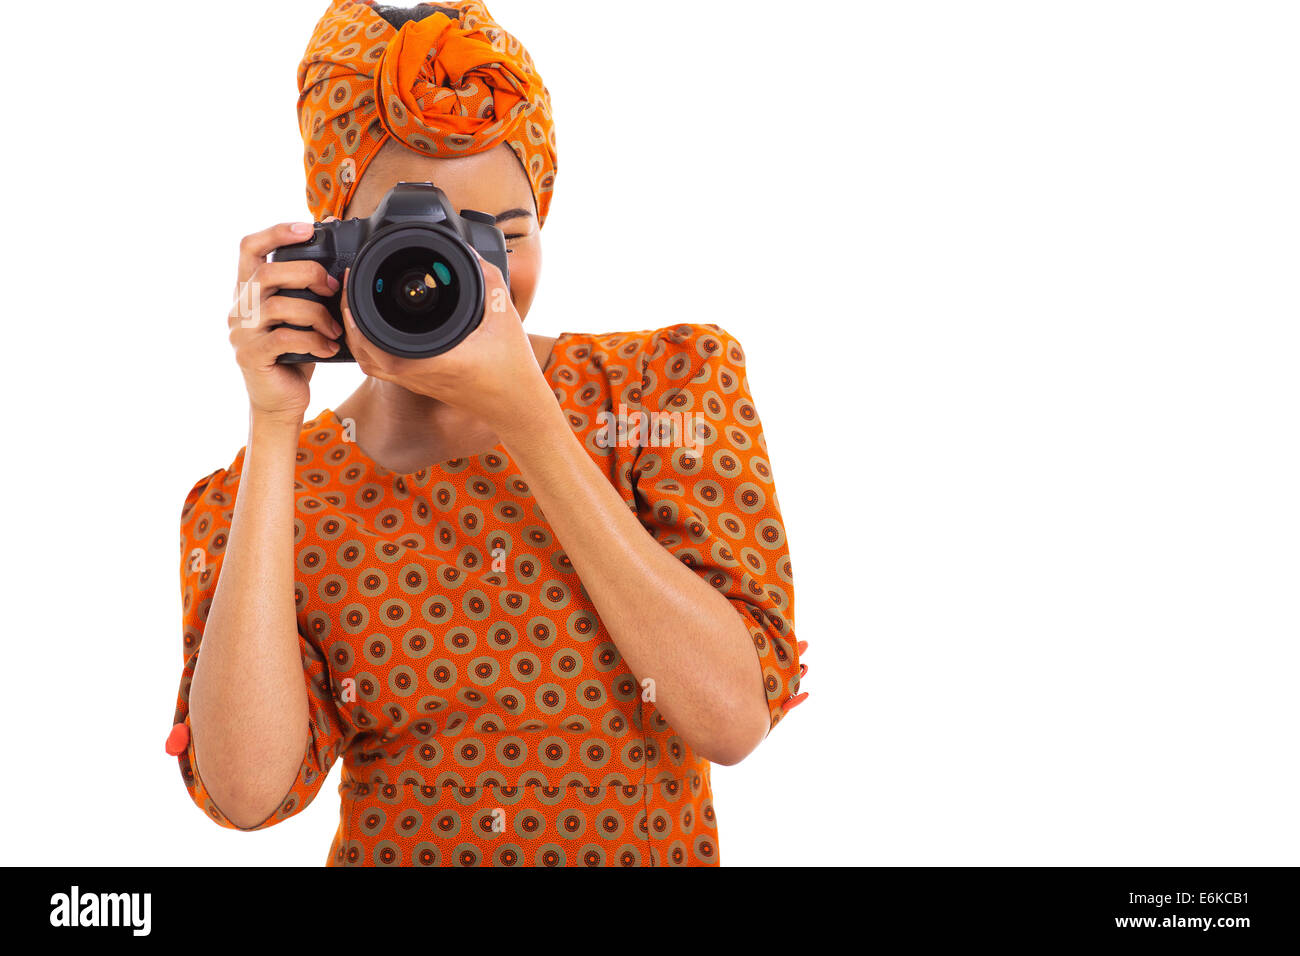 African woman using a camera isolated on white background - Stock Image